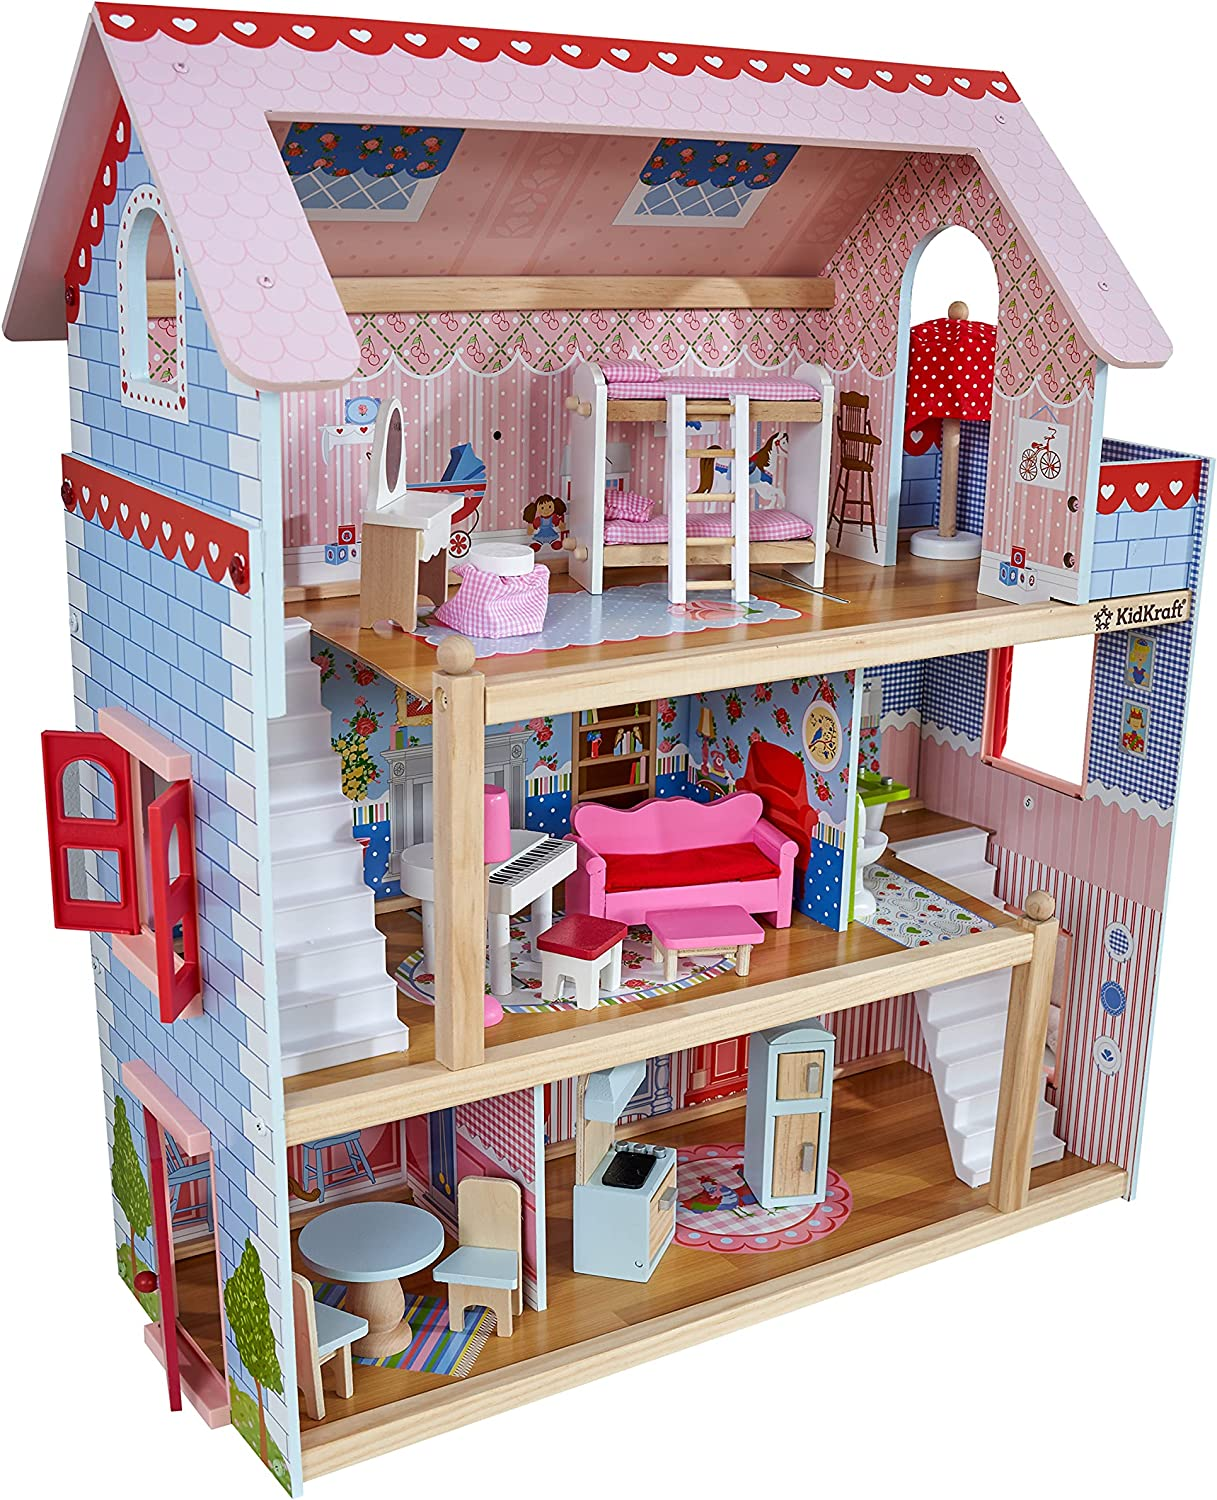 KidKraft Chelsea Doll Cottage Wooden Dollhouse with 16 Accessories, Multi